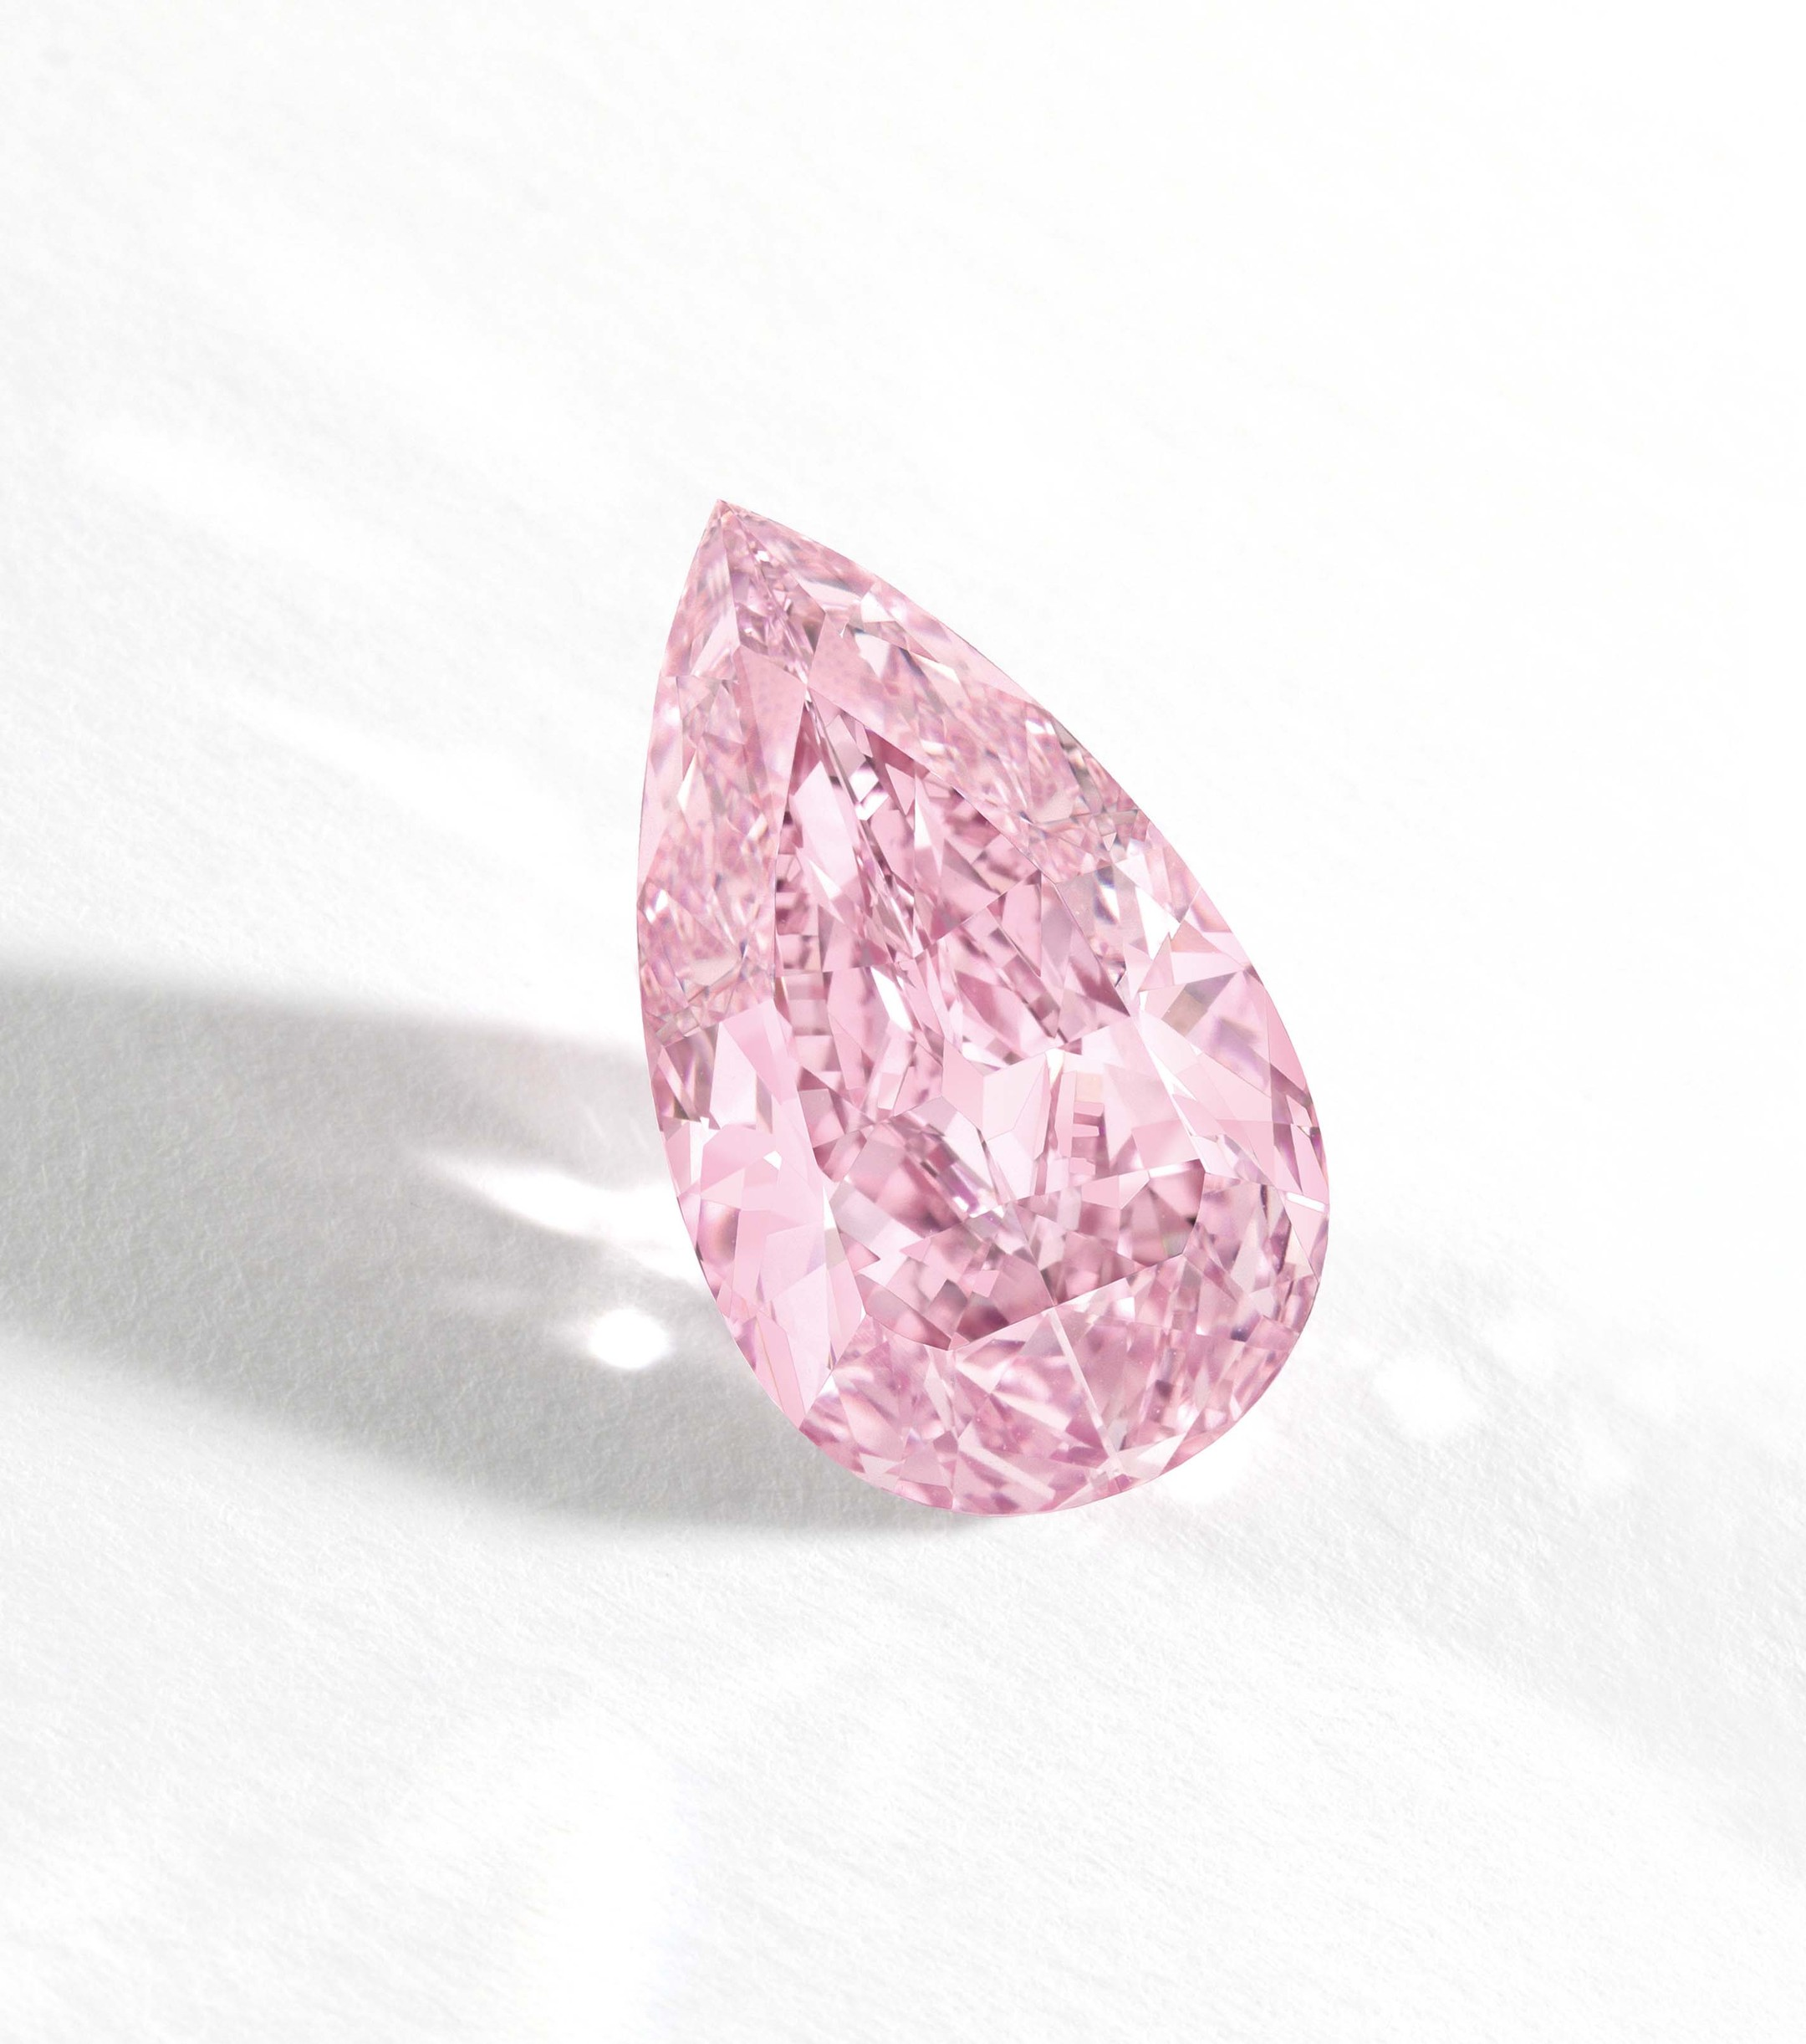 The star attraction of Sotheby's Magnificent sale in Hong Kong on 7 October 2014 was a 8.41ct Internally Flawless Fancy Vivid Purple-Pink Diamond. It realised US$17.7 million (estimate: US$13-15.5 million), setting a new world auction record for a Fancy V